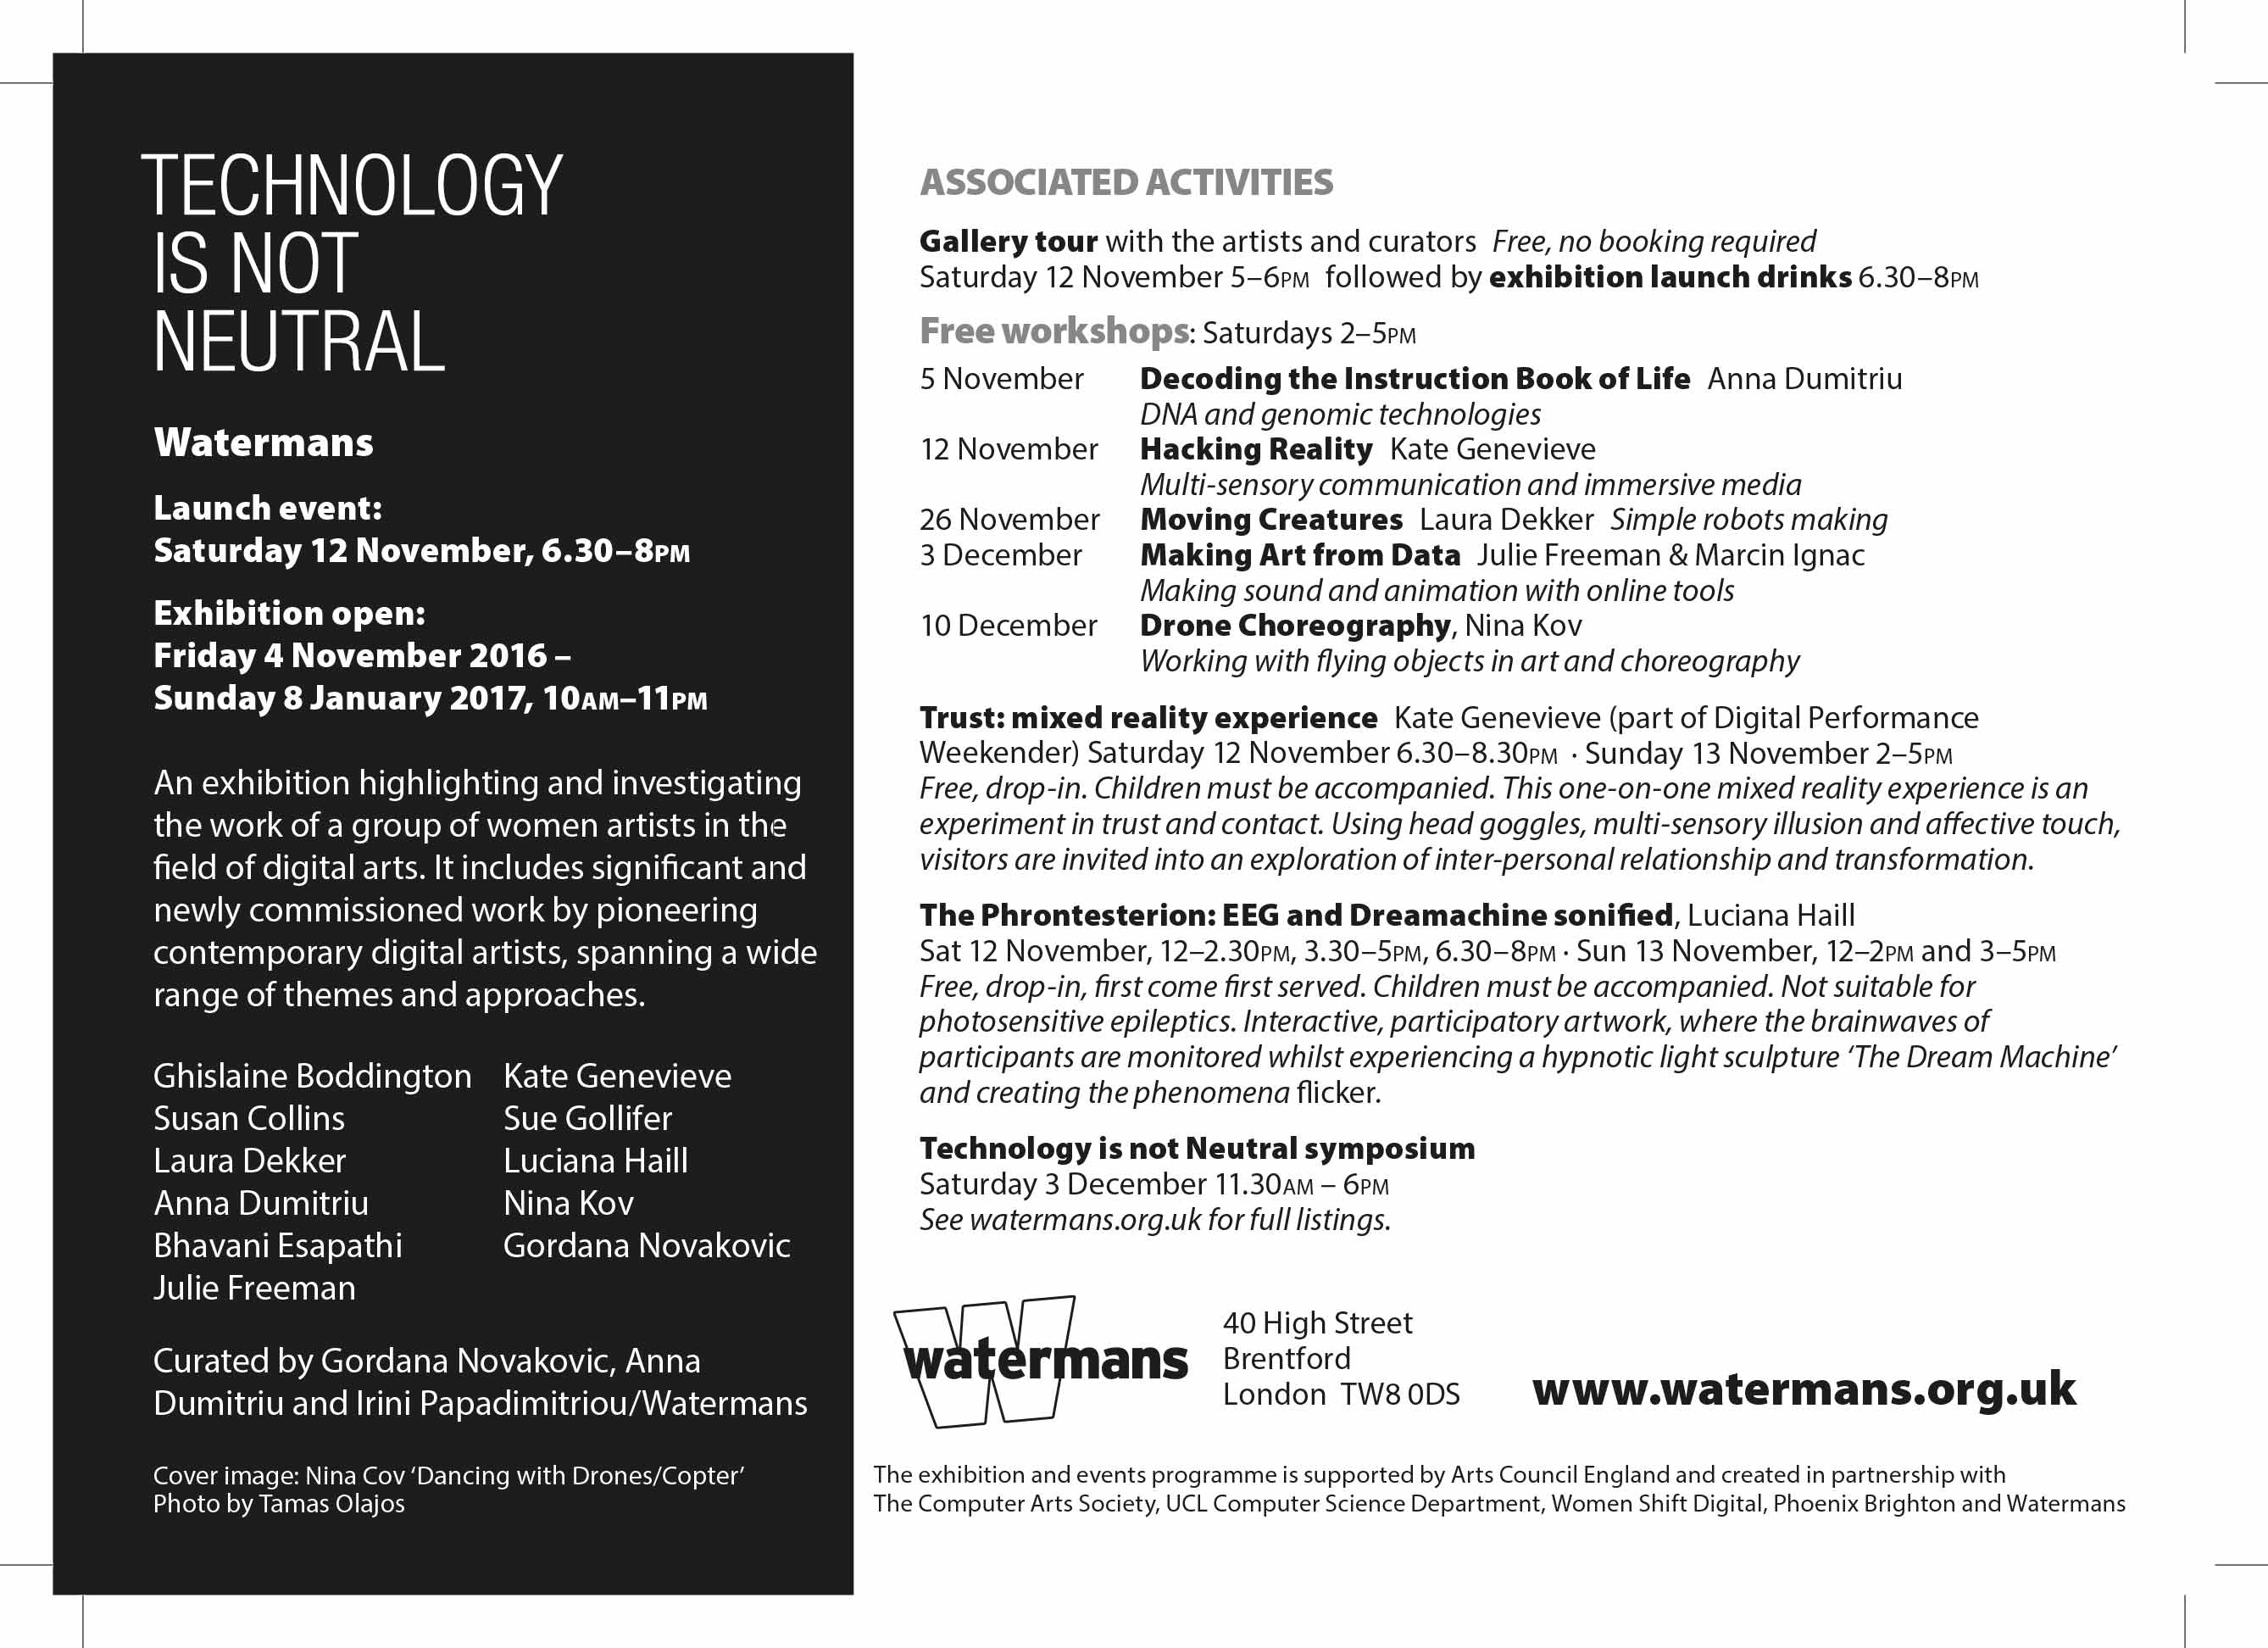 Technology-is-not-neutral-flyer-2Watermans-print-2